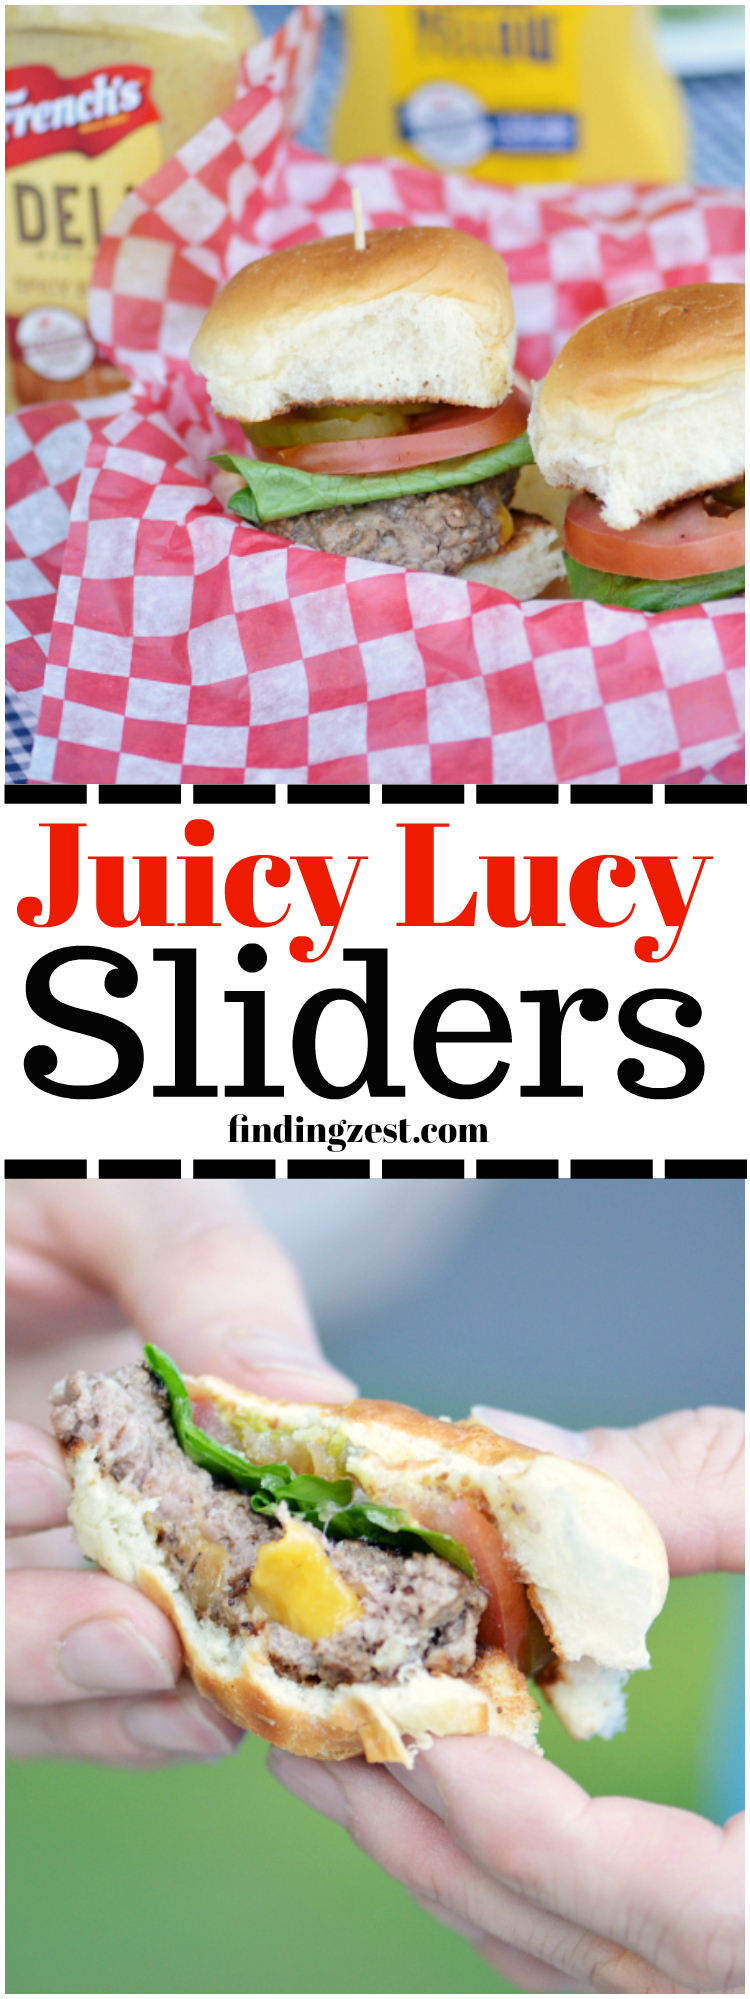 Enjoy melted cheese in the center of your hamburger patty with this delicious mini Juicy Lucy sliders recipe. Don't forget the mustard!